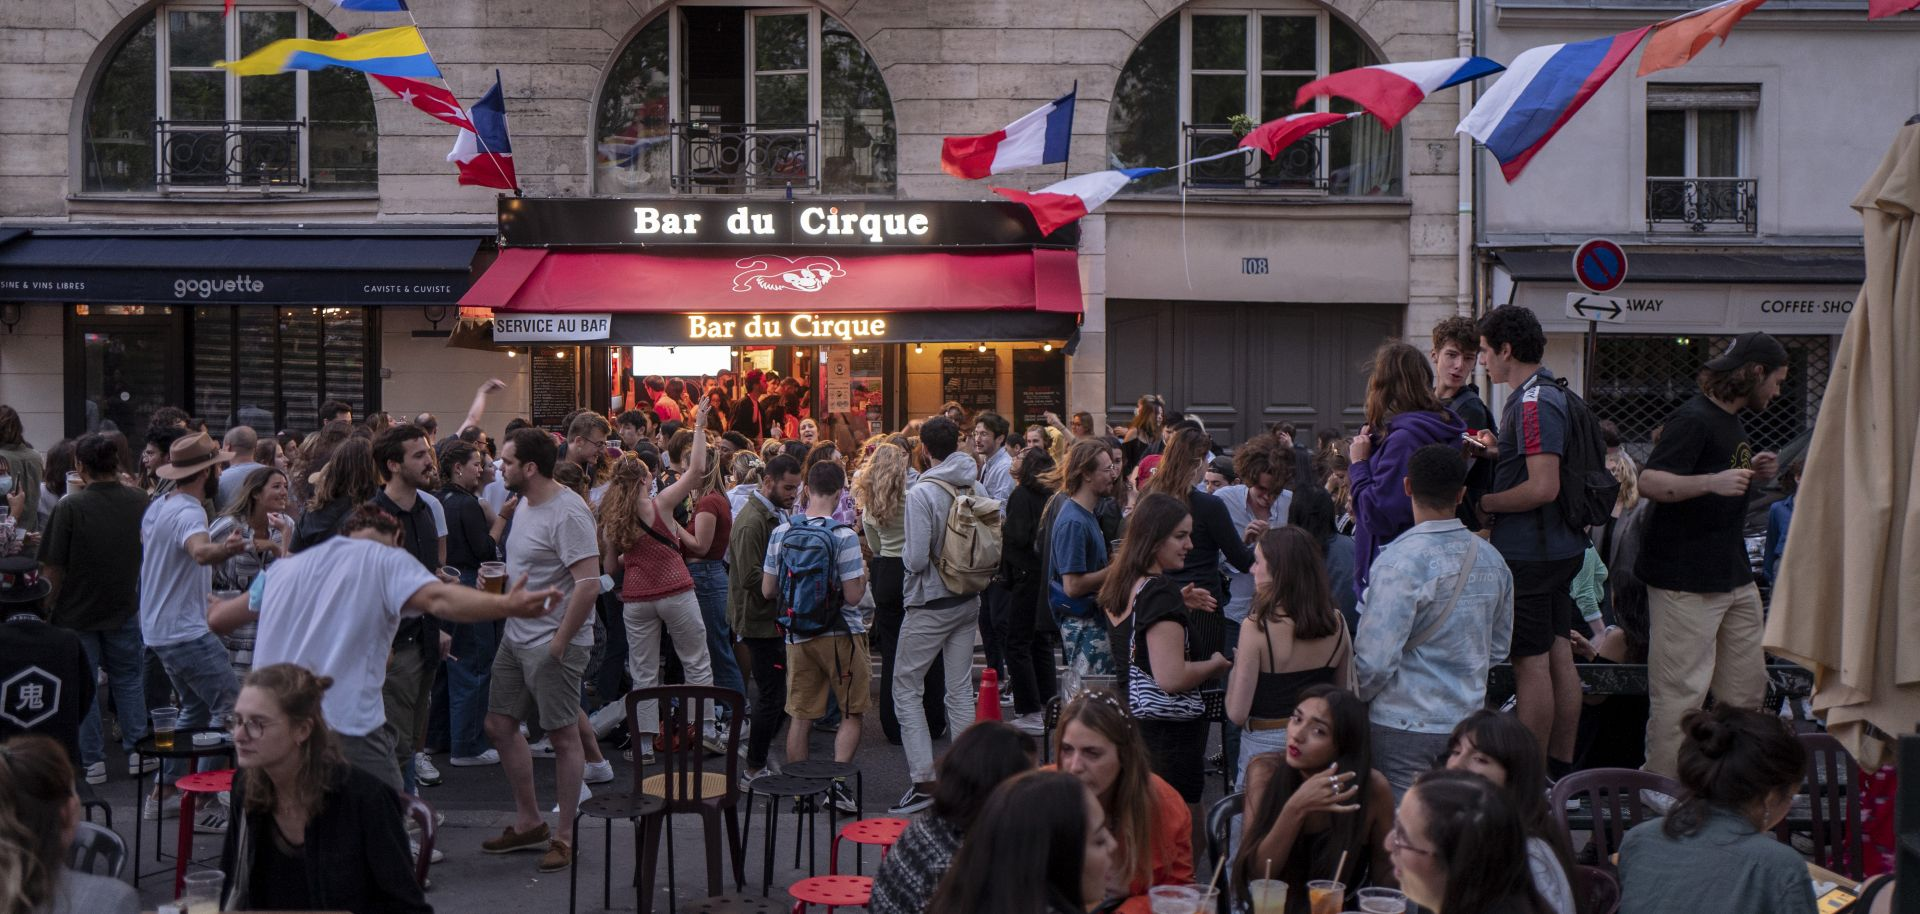 People dance in front of a bar in Paris on June 21, 2021, after the French government lifted the national curfew.